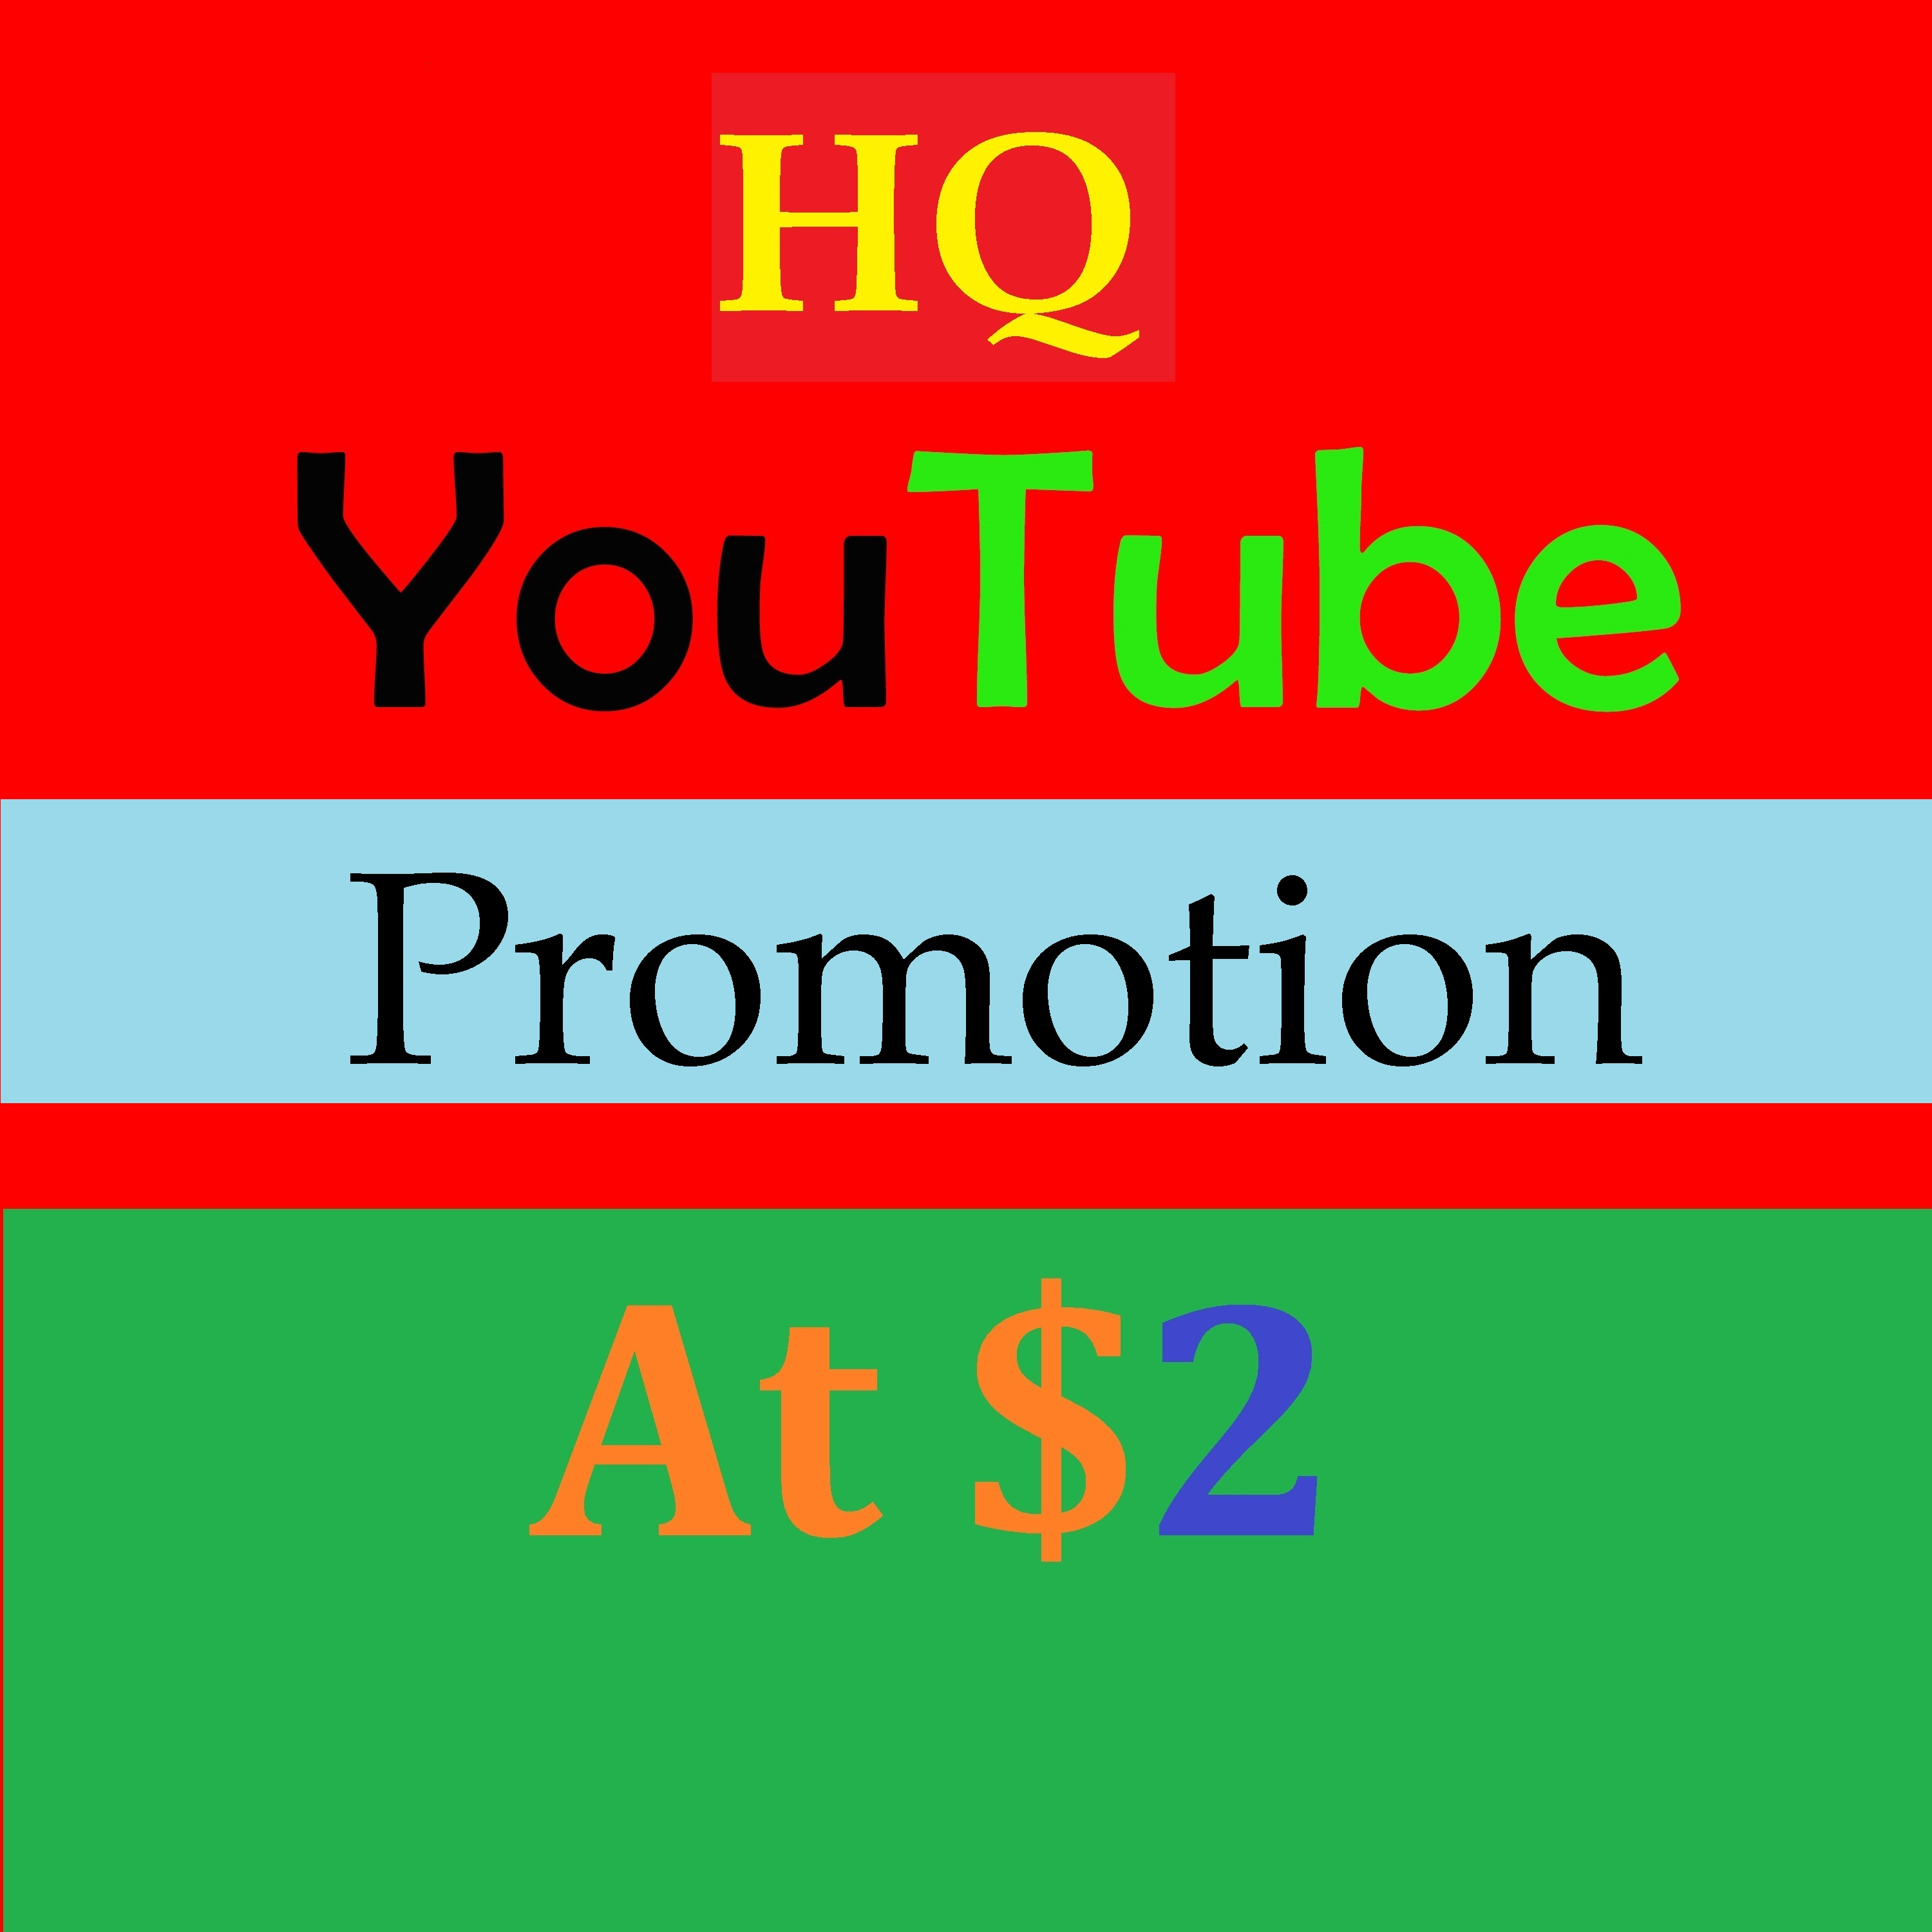 Social Media YouTube Promotion services